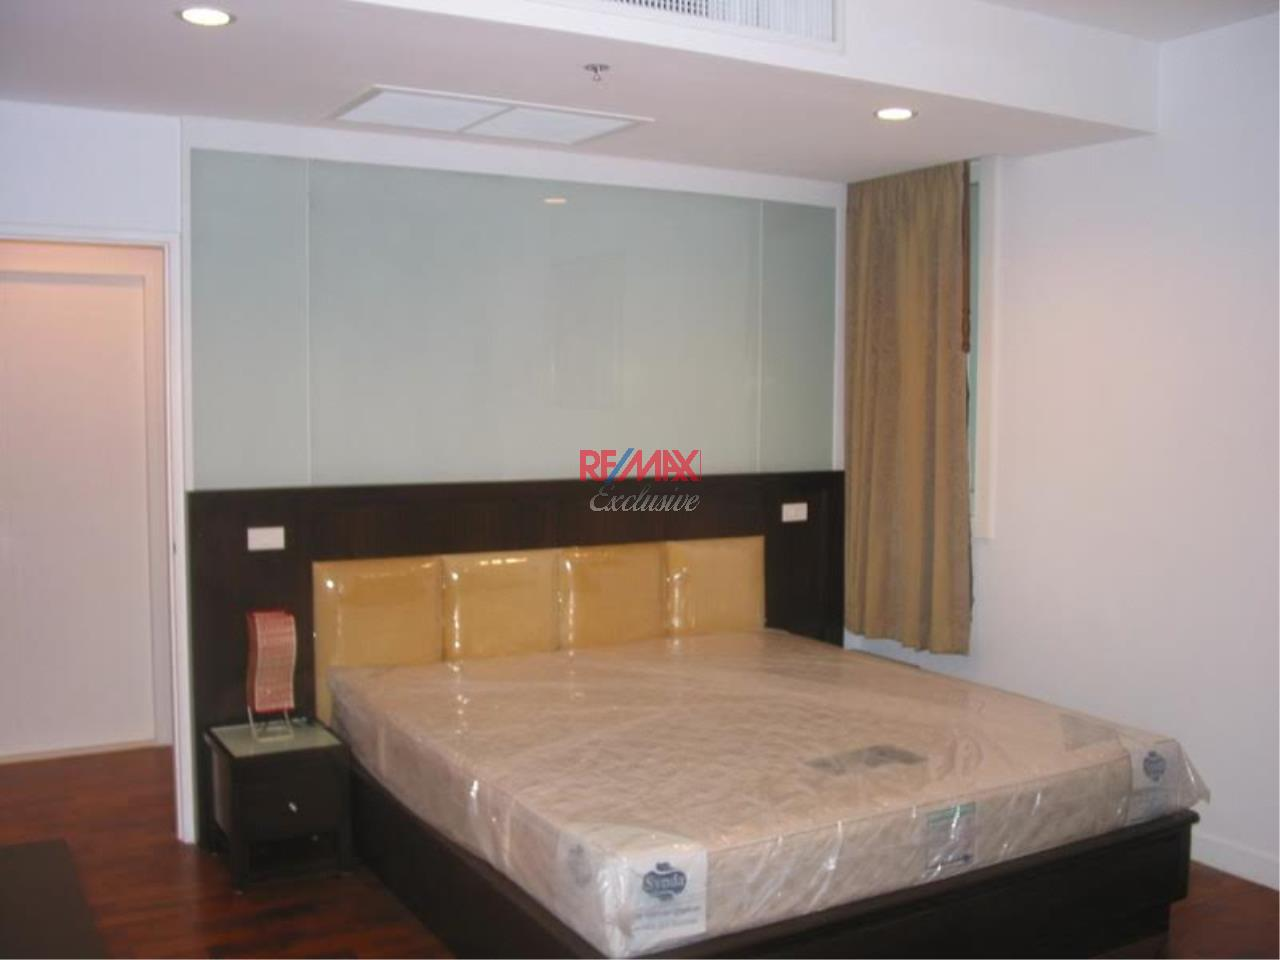 RE/MAX Exclusive Agency's 2 Bedrooms at Baan Siri24 For Rent 65,000 THB  3